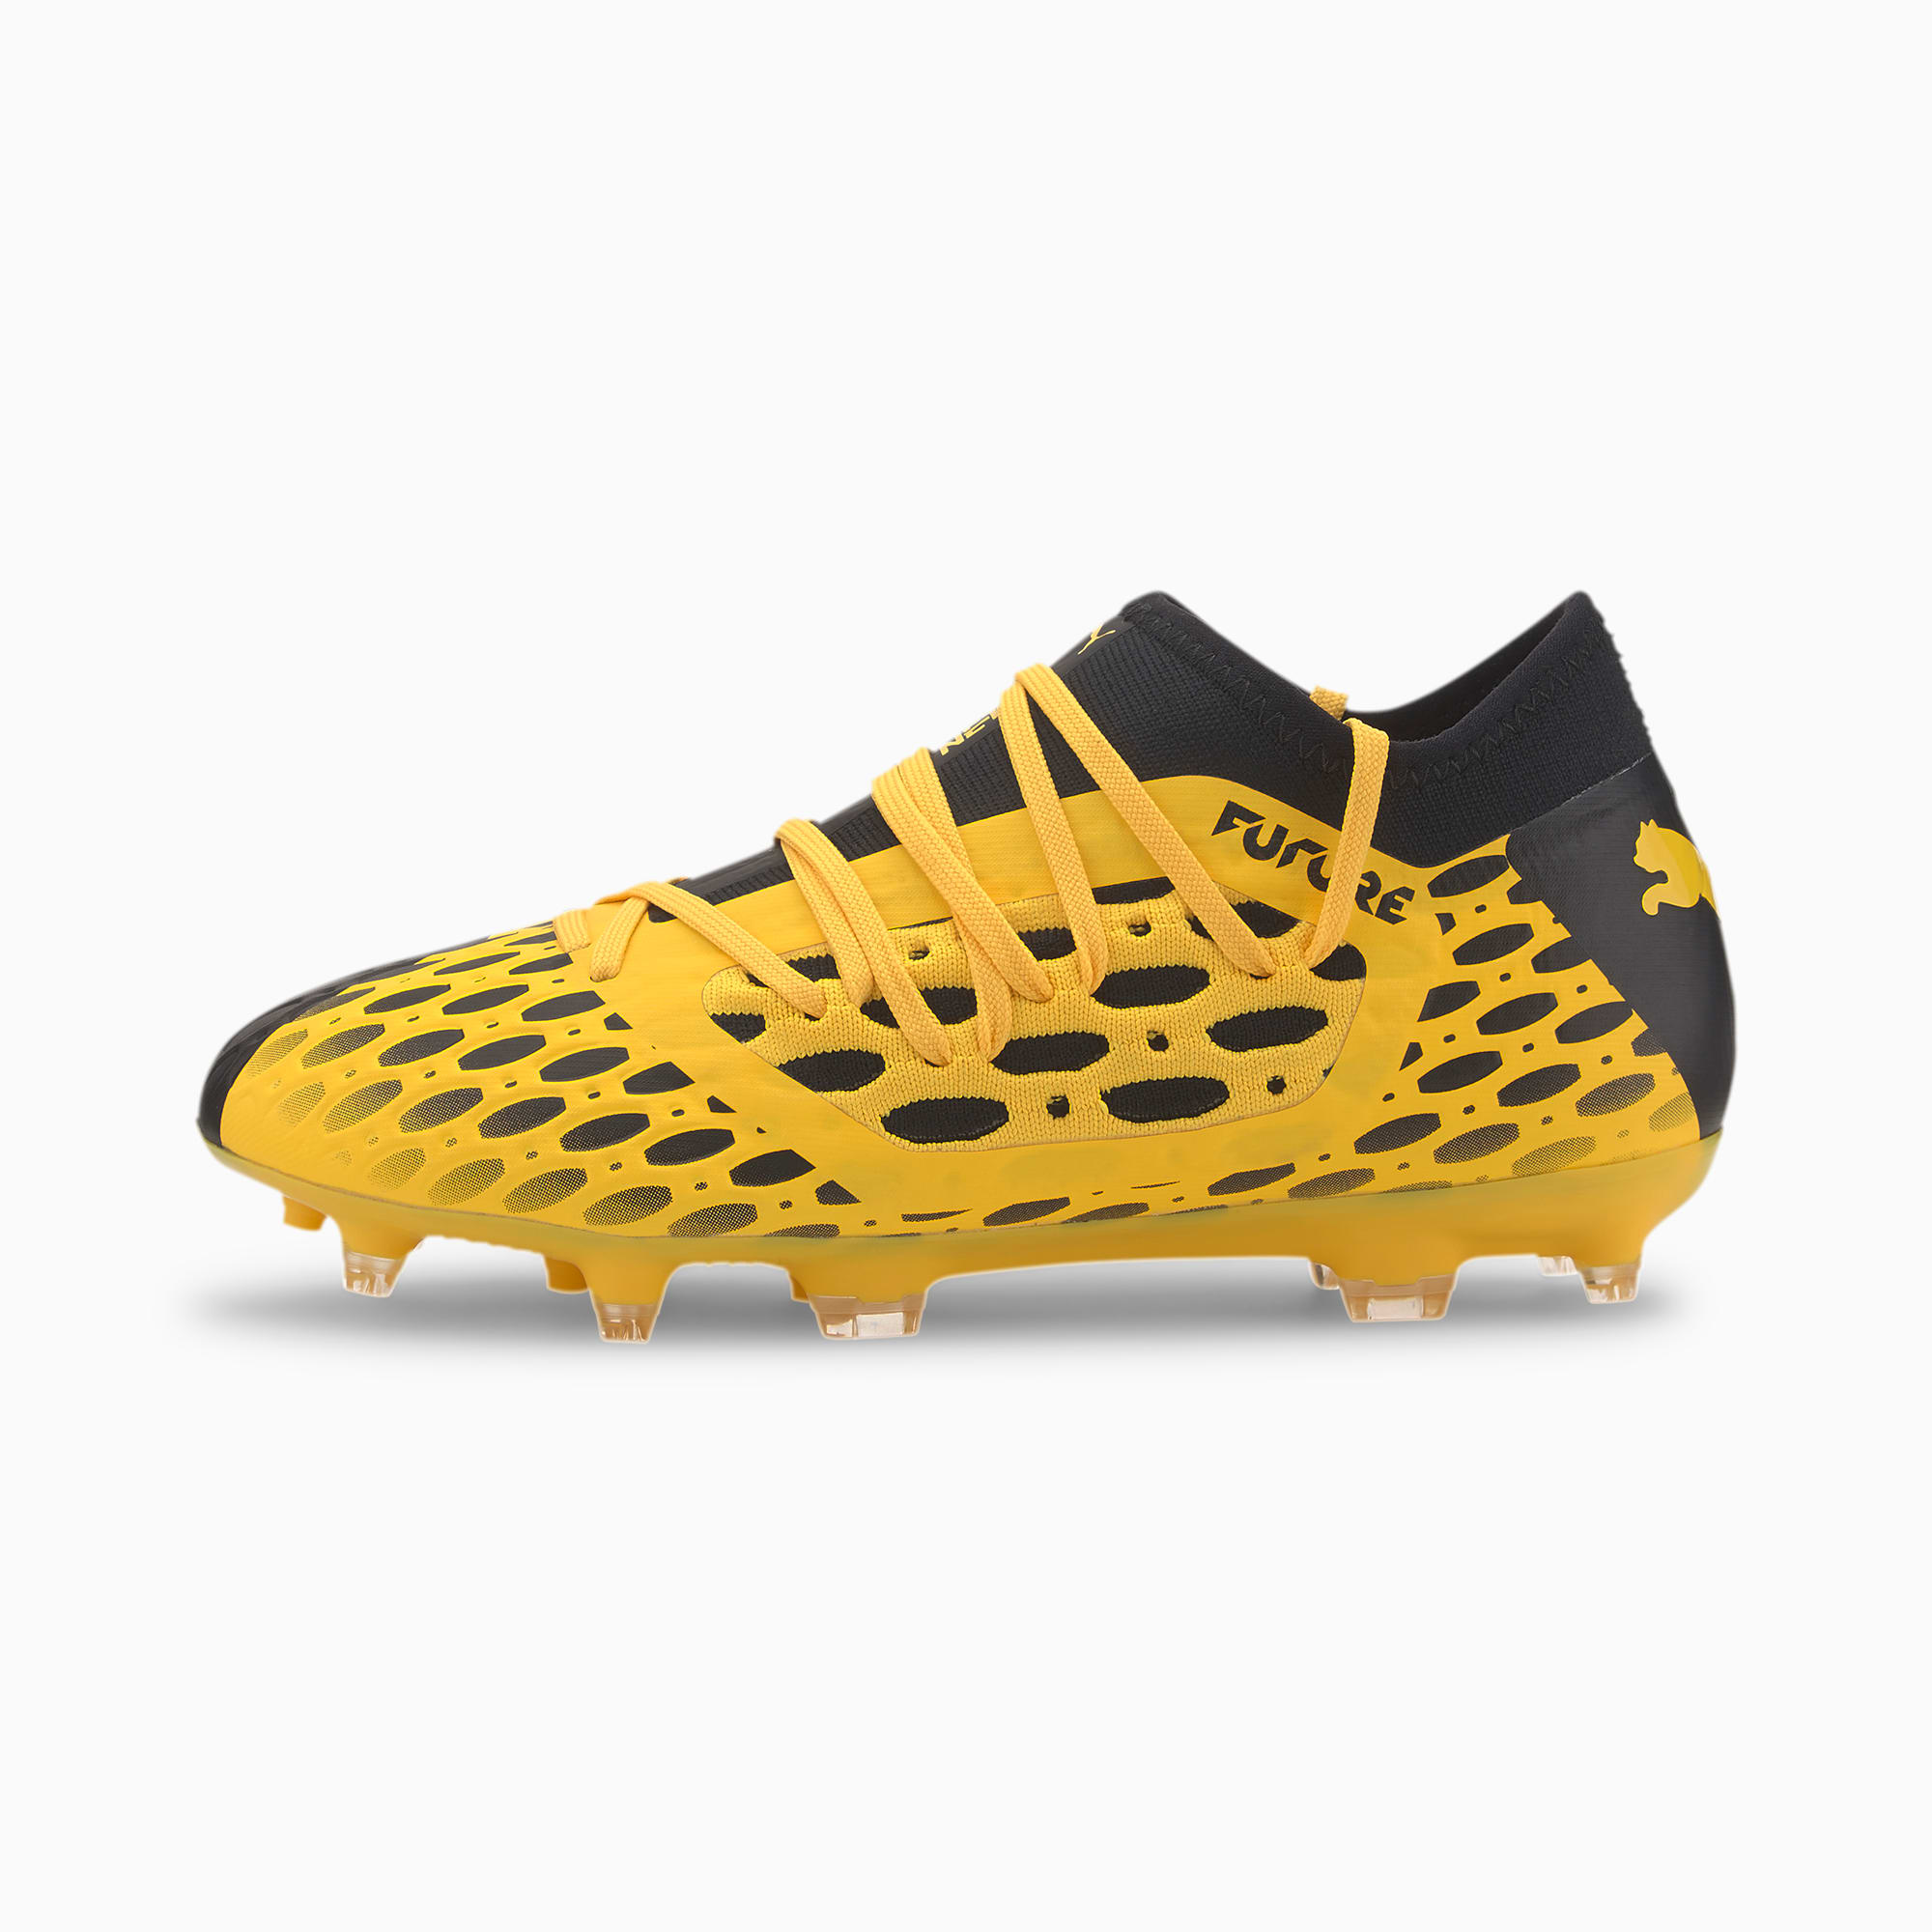 FUTURE 5.3 NETFIT FG/AG Soccer Cleats JR